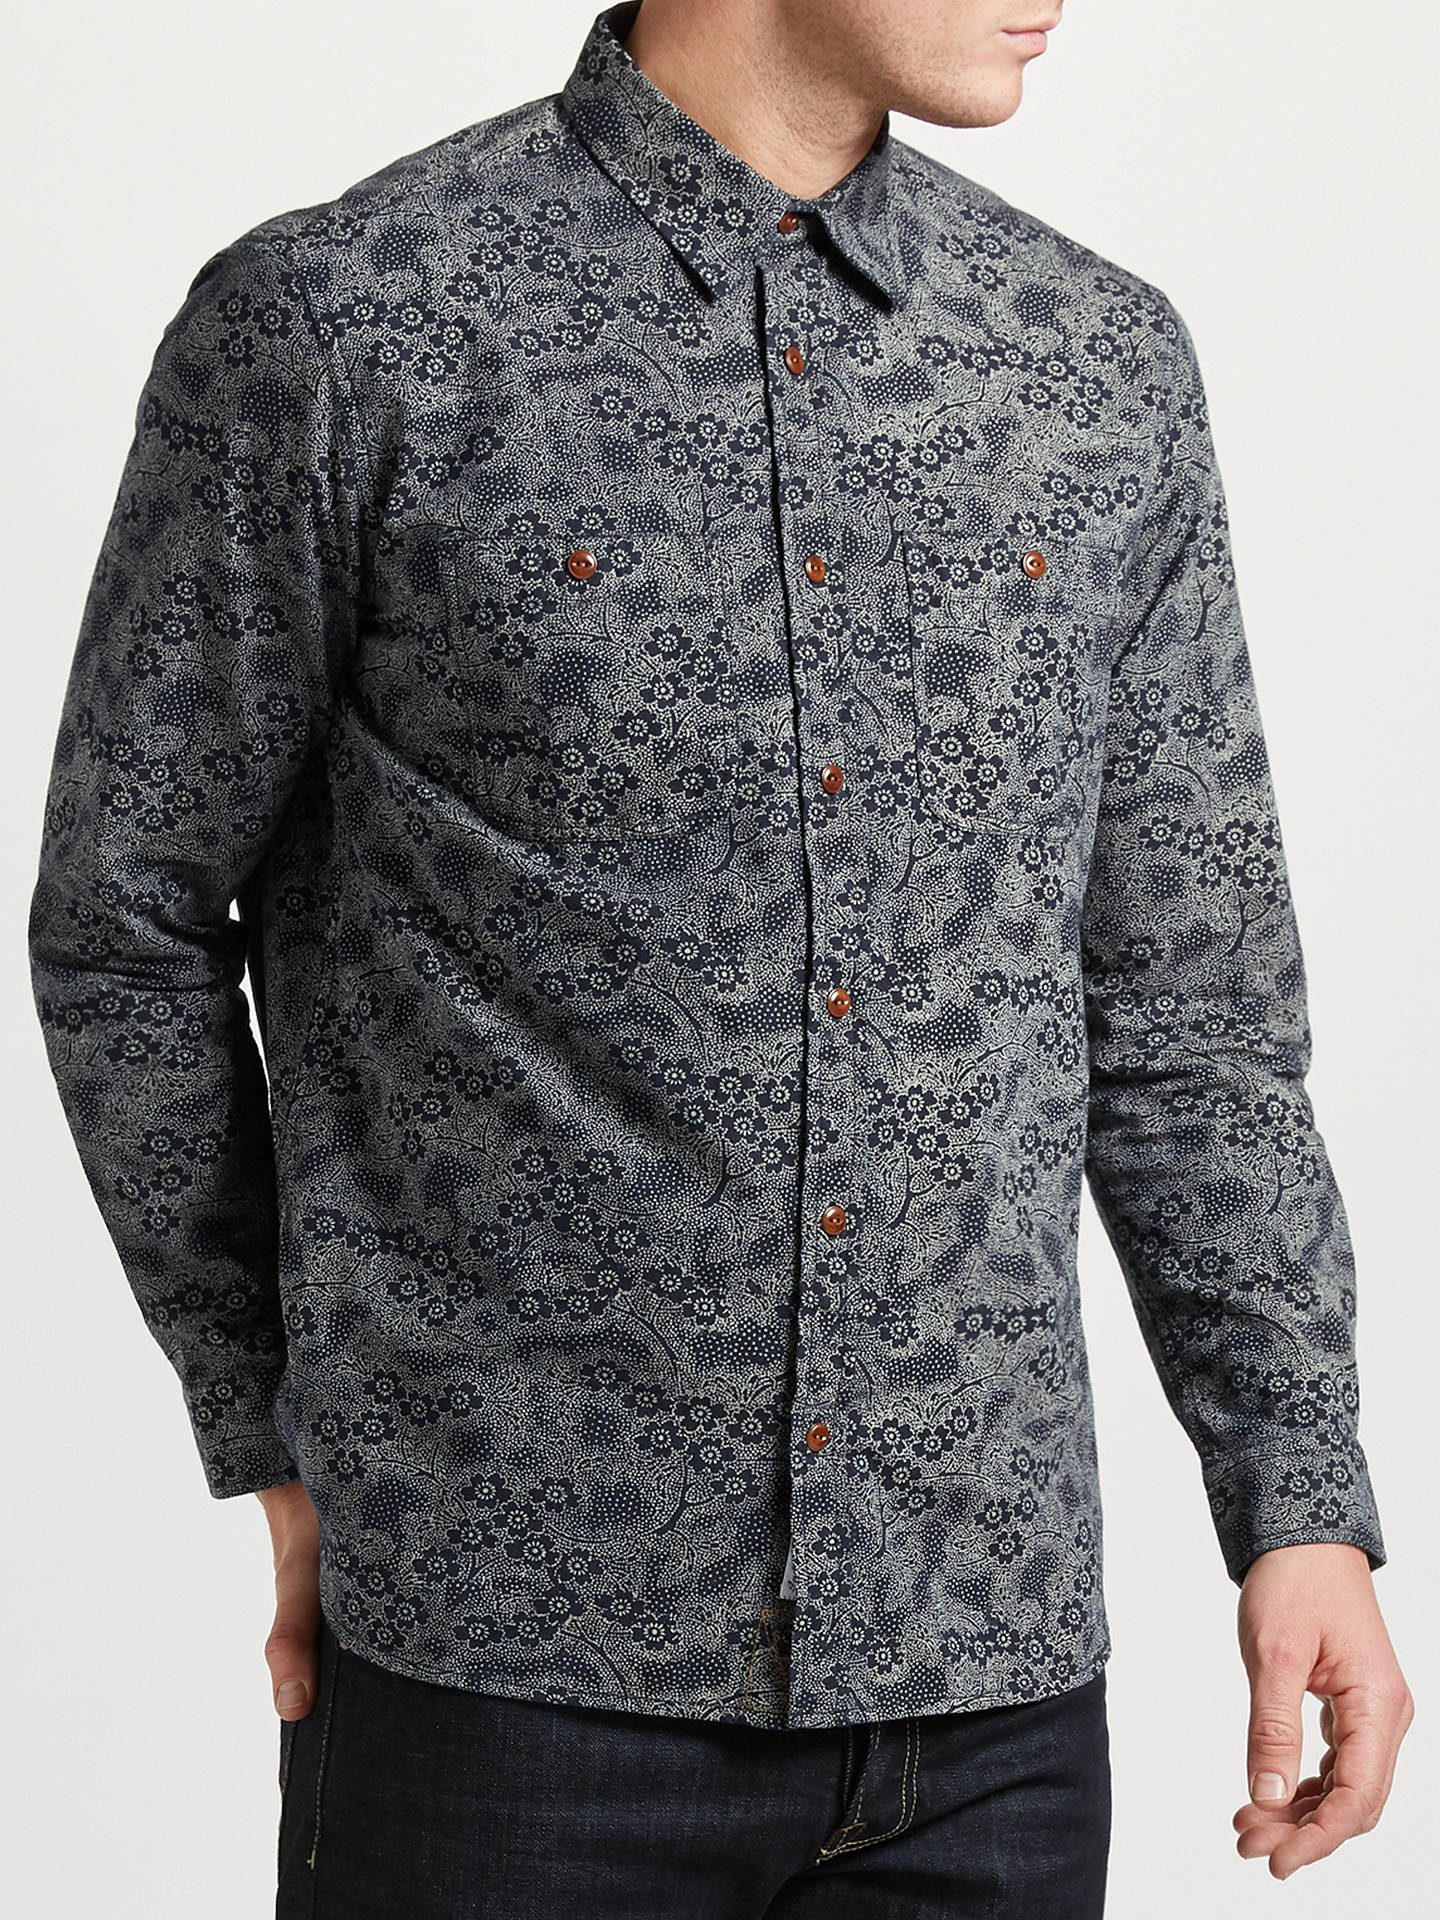 BuyJOHN LEWIS & Co. Floral Print Shirt, Navy, S Online at johnlewis.com